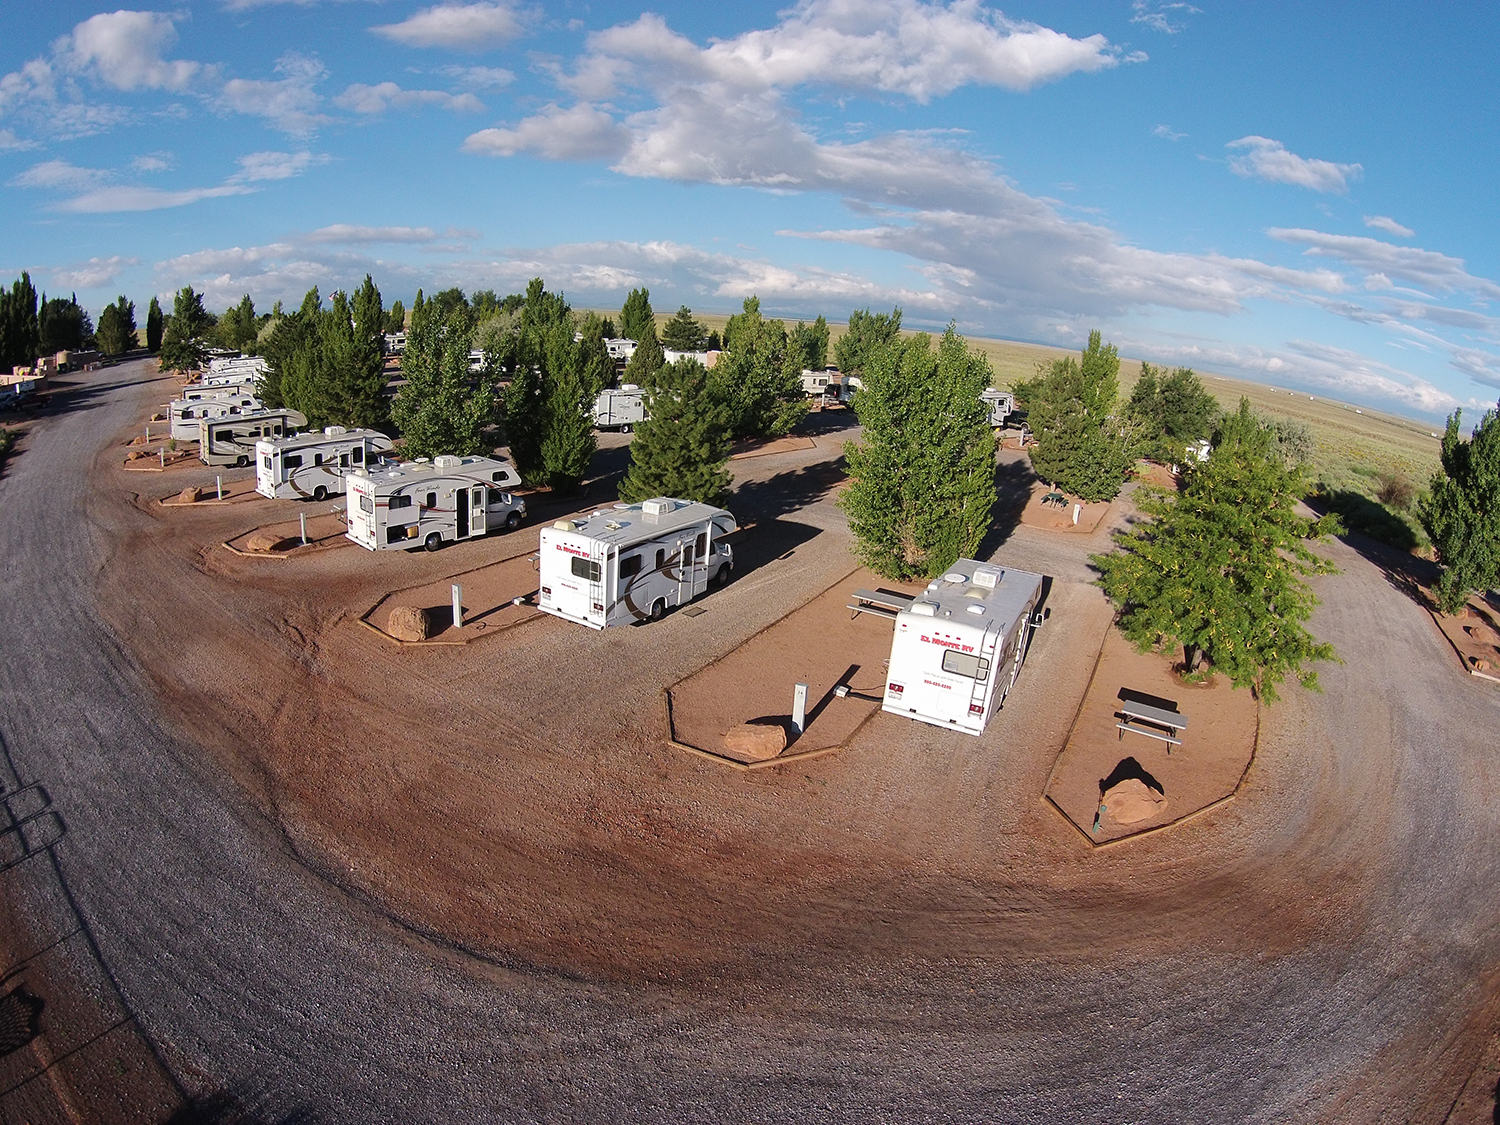 Aerial view of desert RV park with trees.